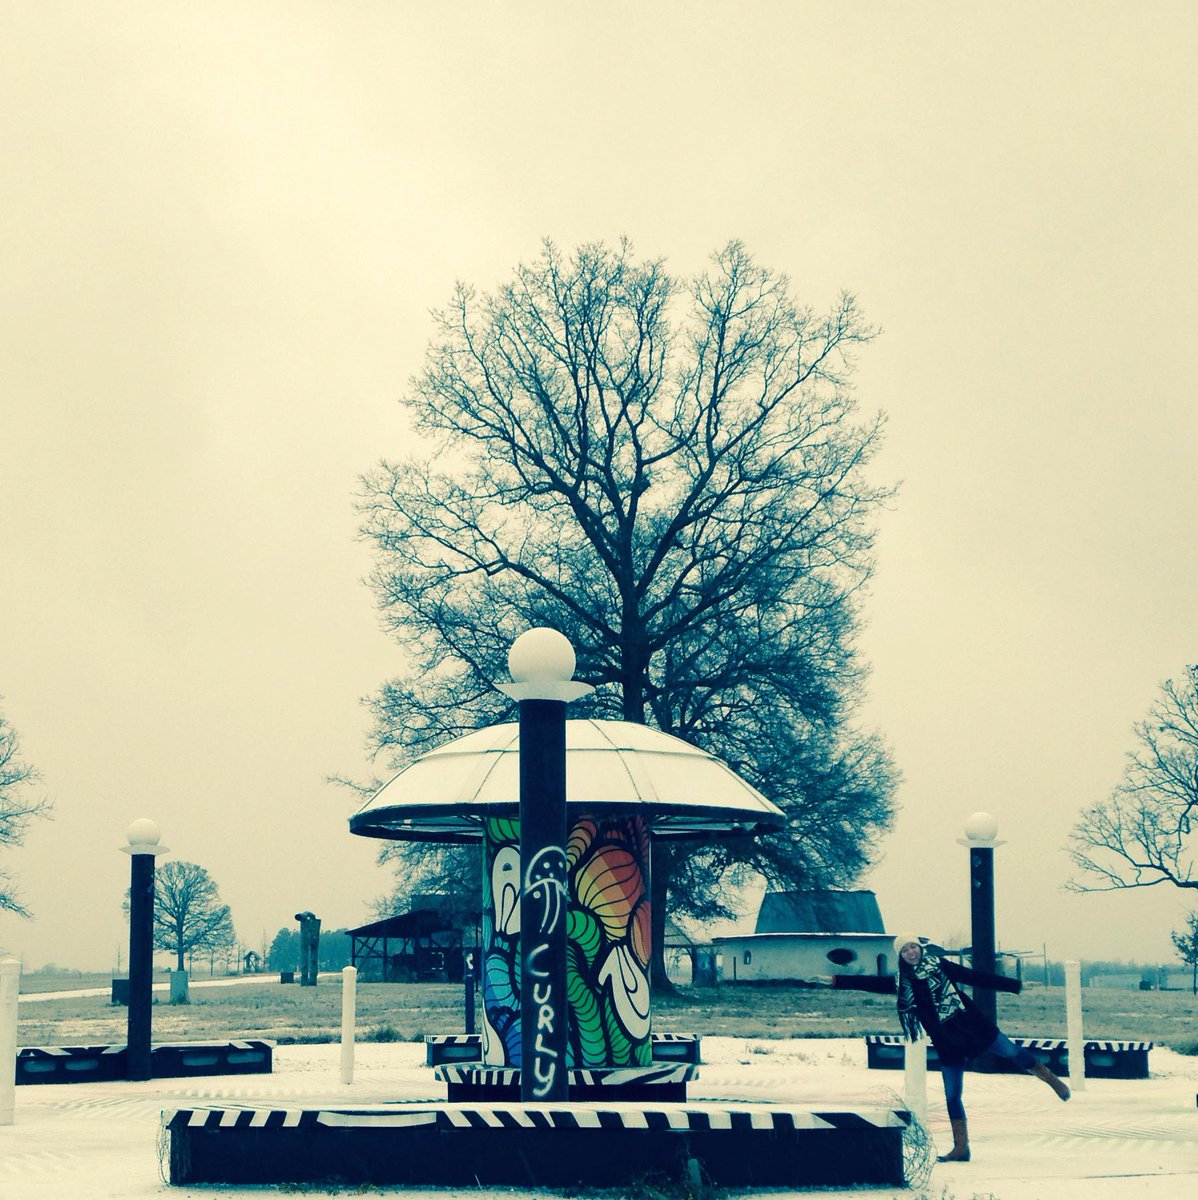 Our #Bonnaroo team is down at The Farm this week and forgot their ice skates! Only 98 days to go... http://t.co/5VnfD7qUP1